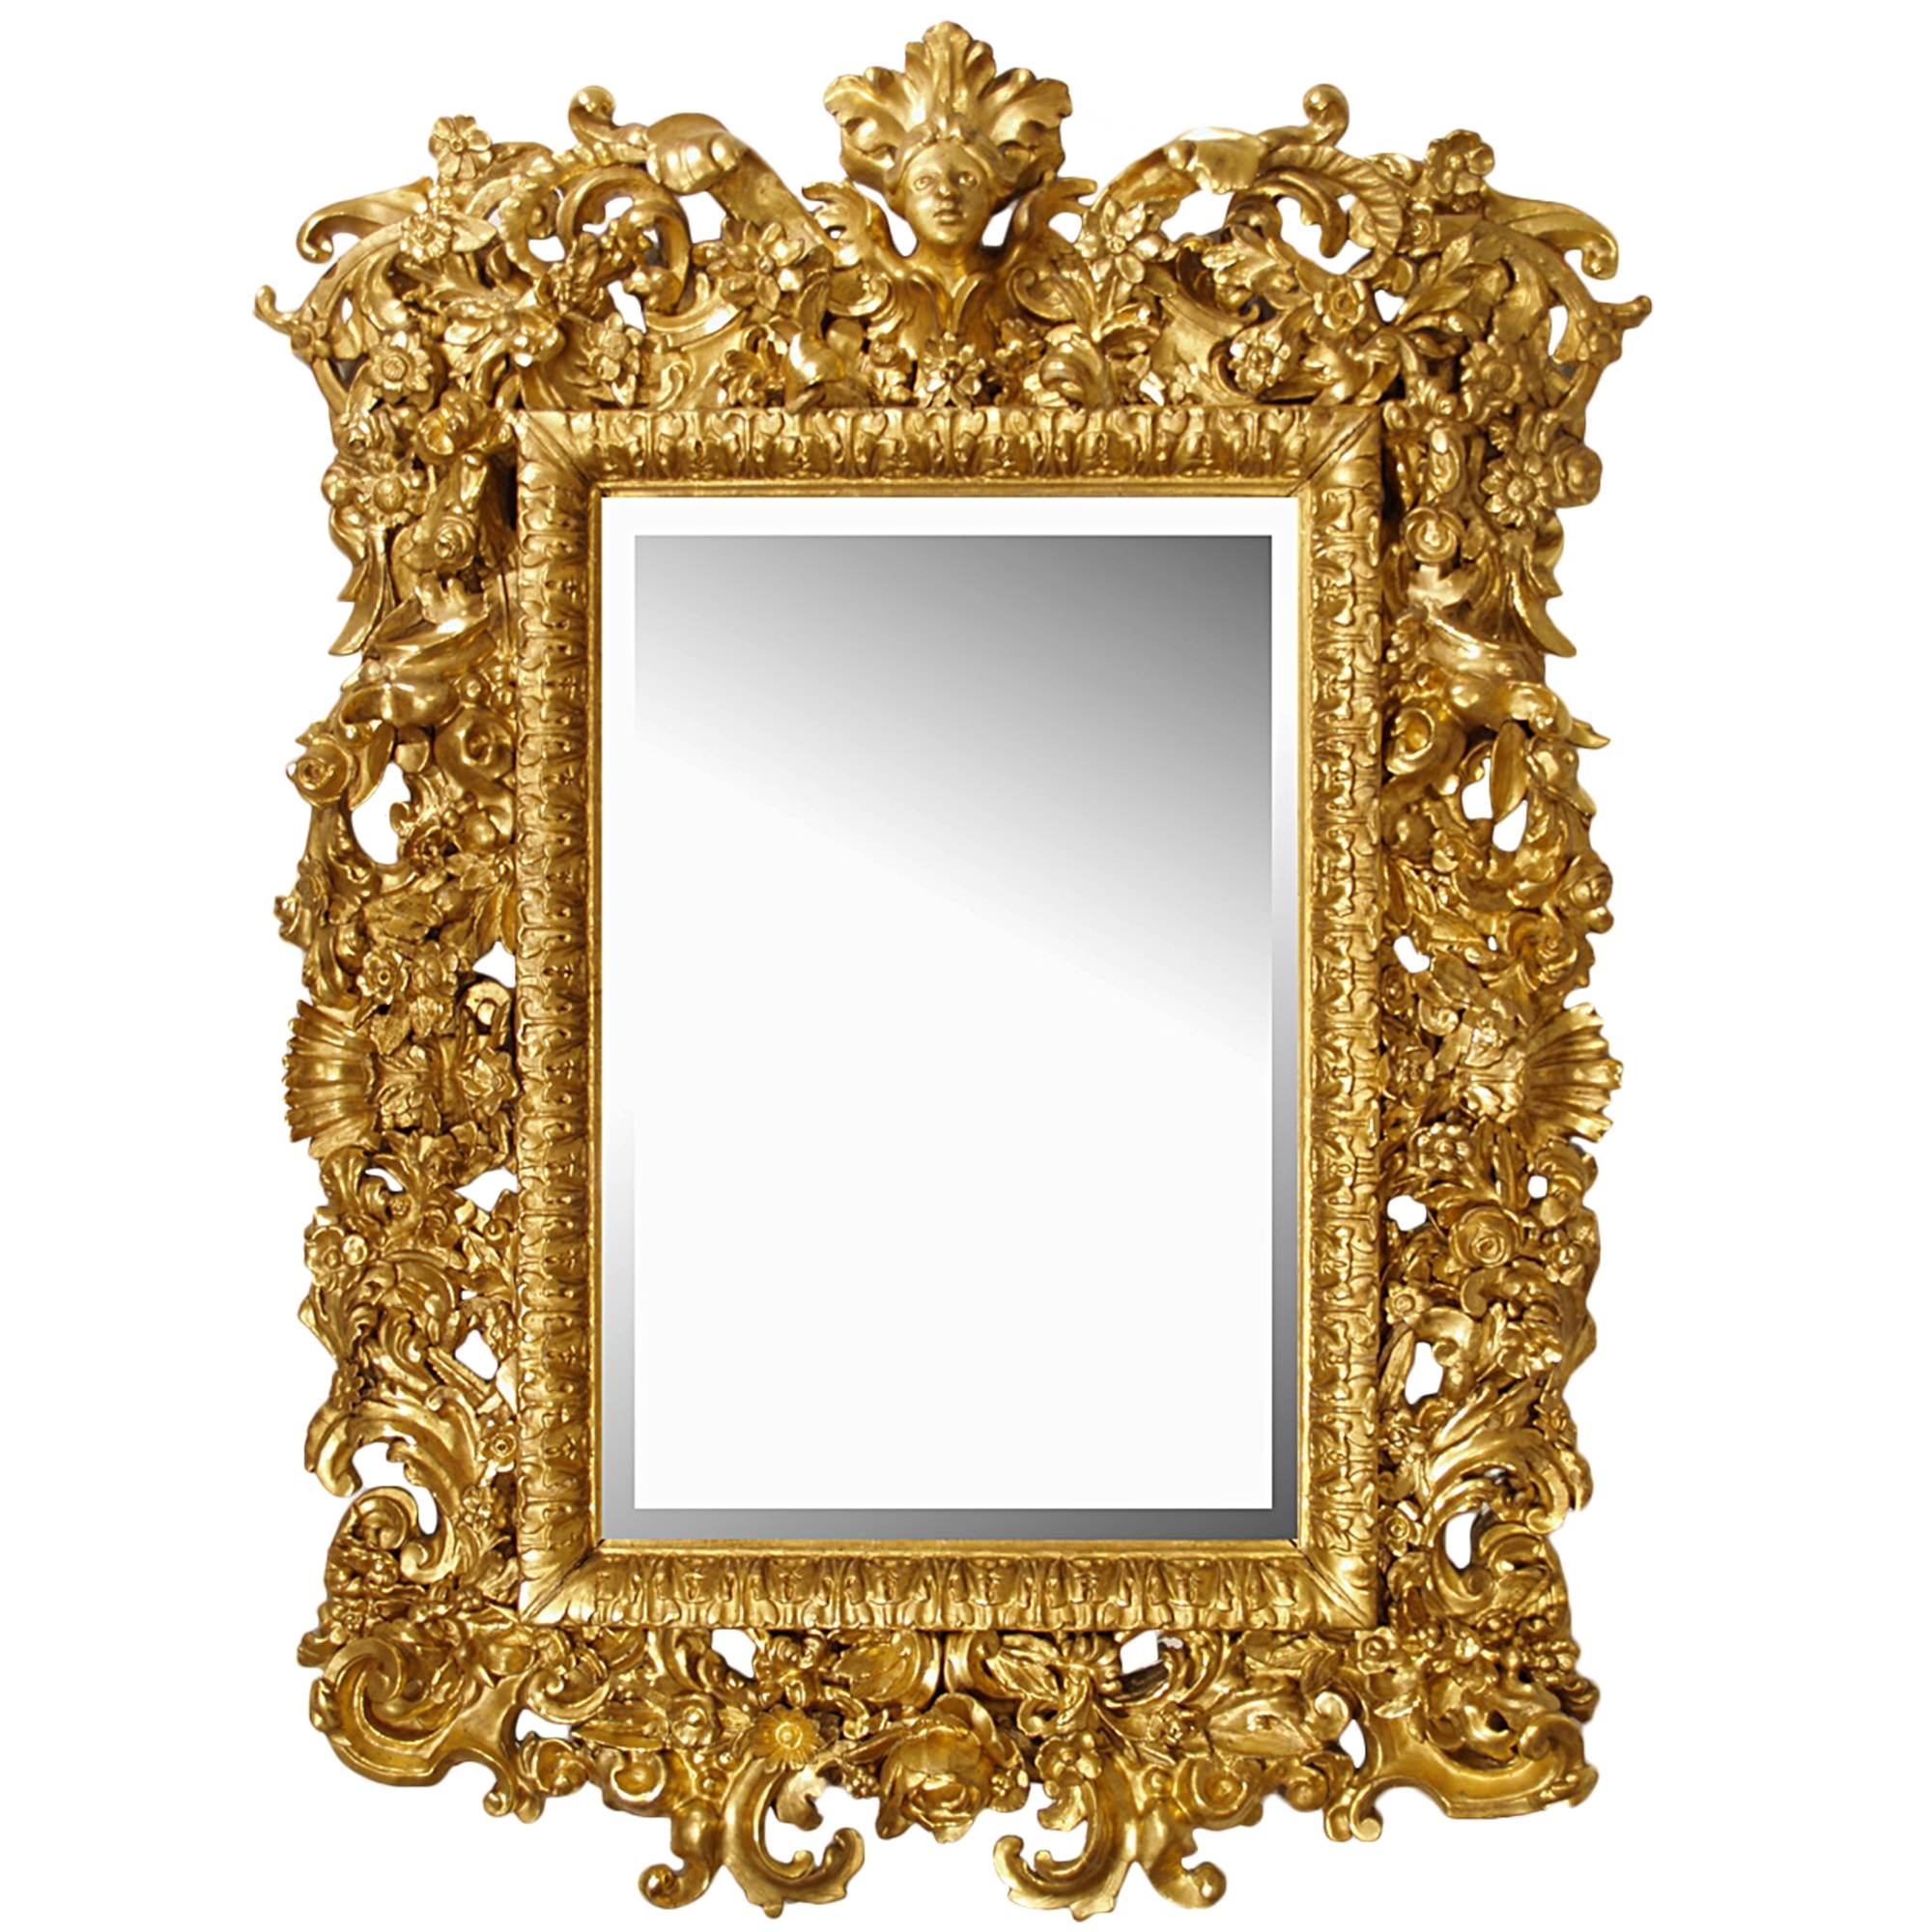 Bathroom: Astounding Baroque Mirror With Unique Frame For Bathroom Inside Baroque White Mirrors (View 10 of 25)